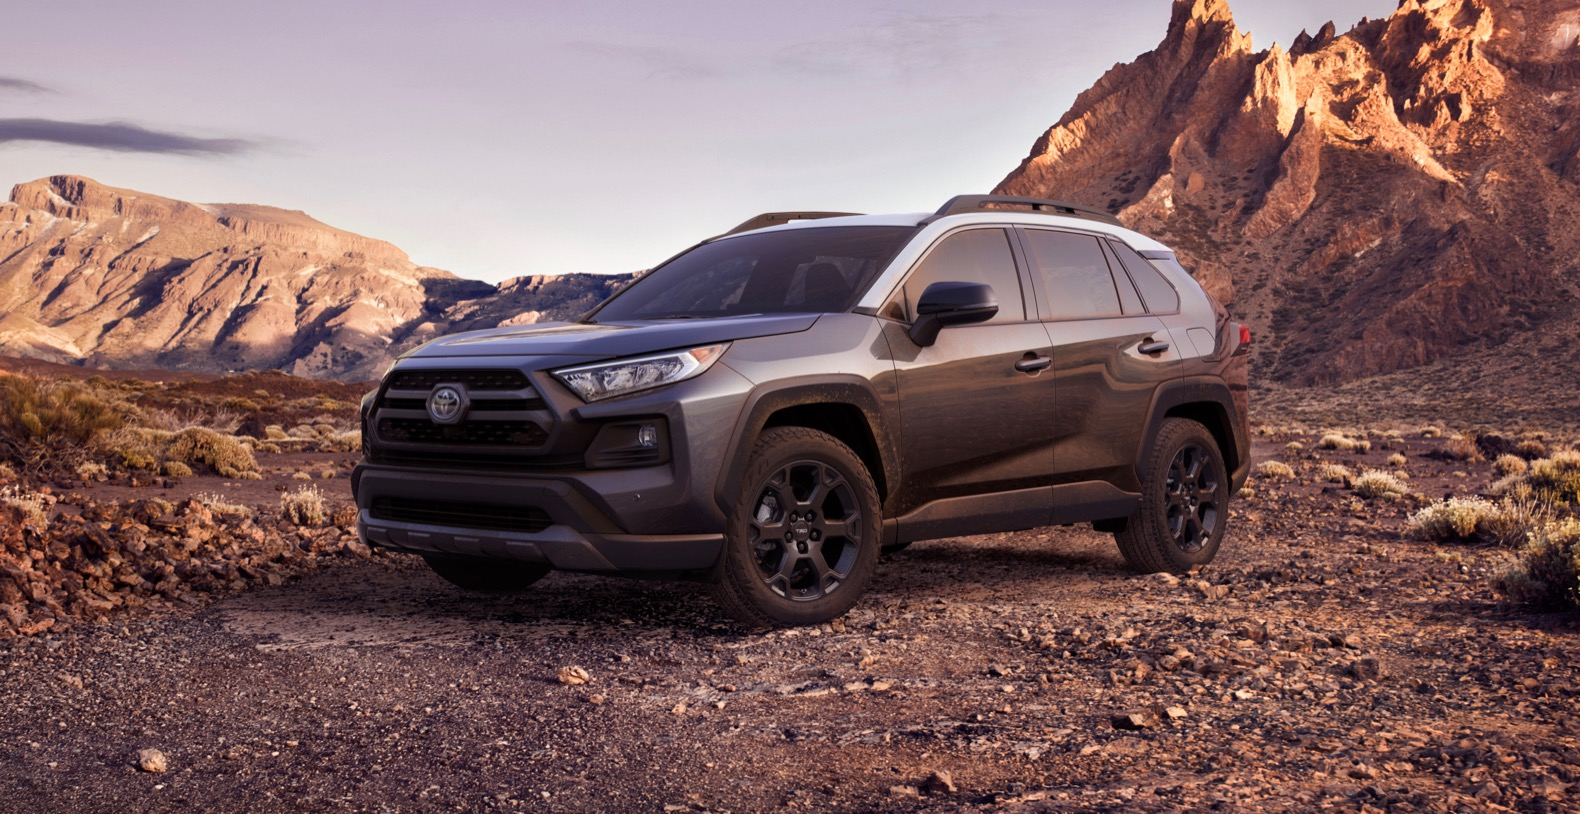 2020_RAV4_TRD_Off_Road_02.jpg